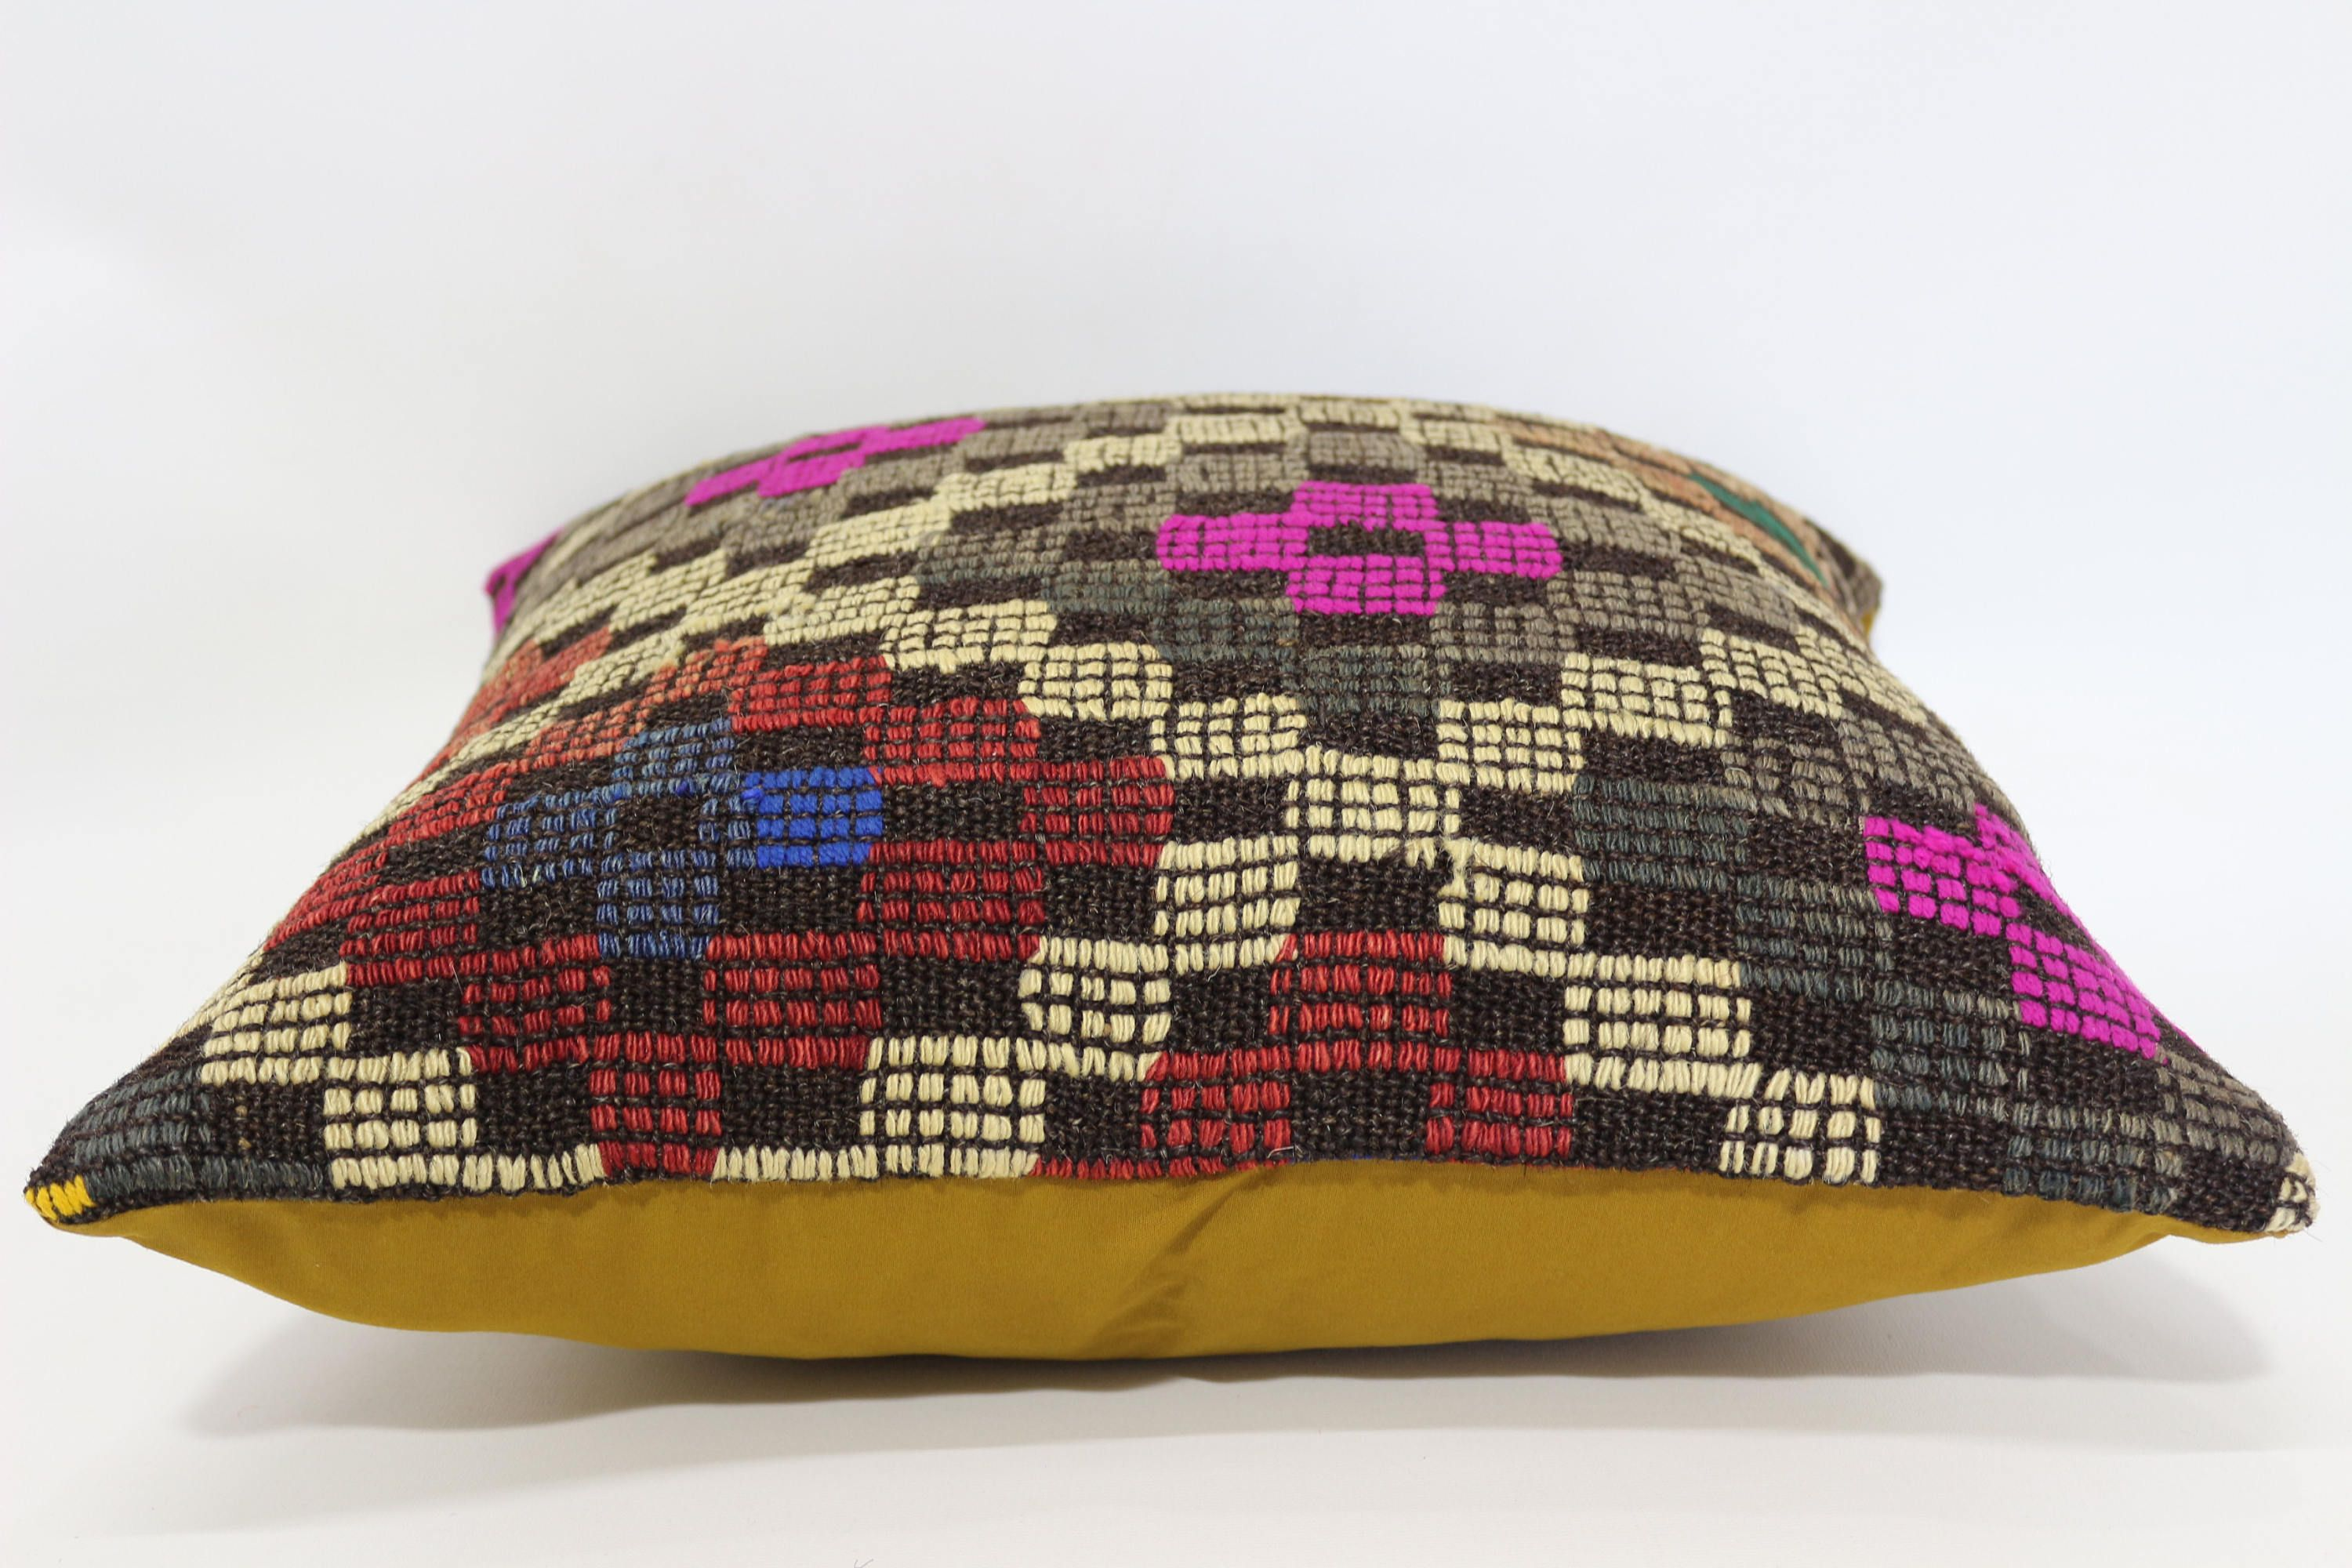 loom next pillows kilim pillow asli products field turkish